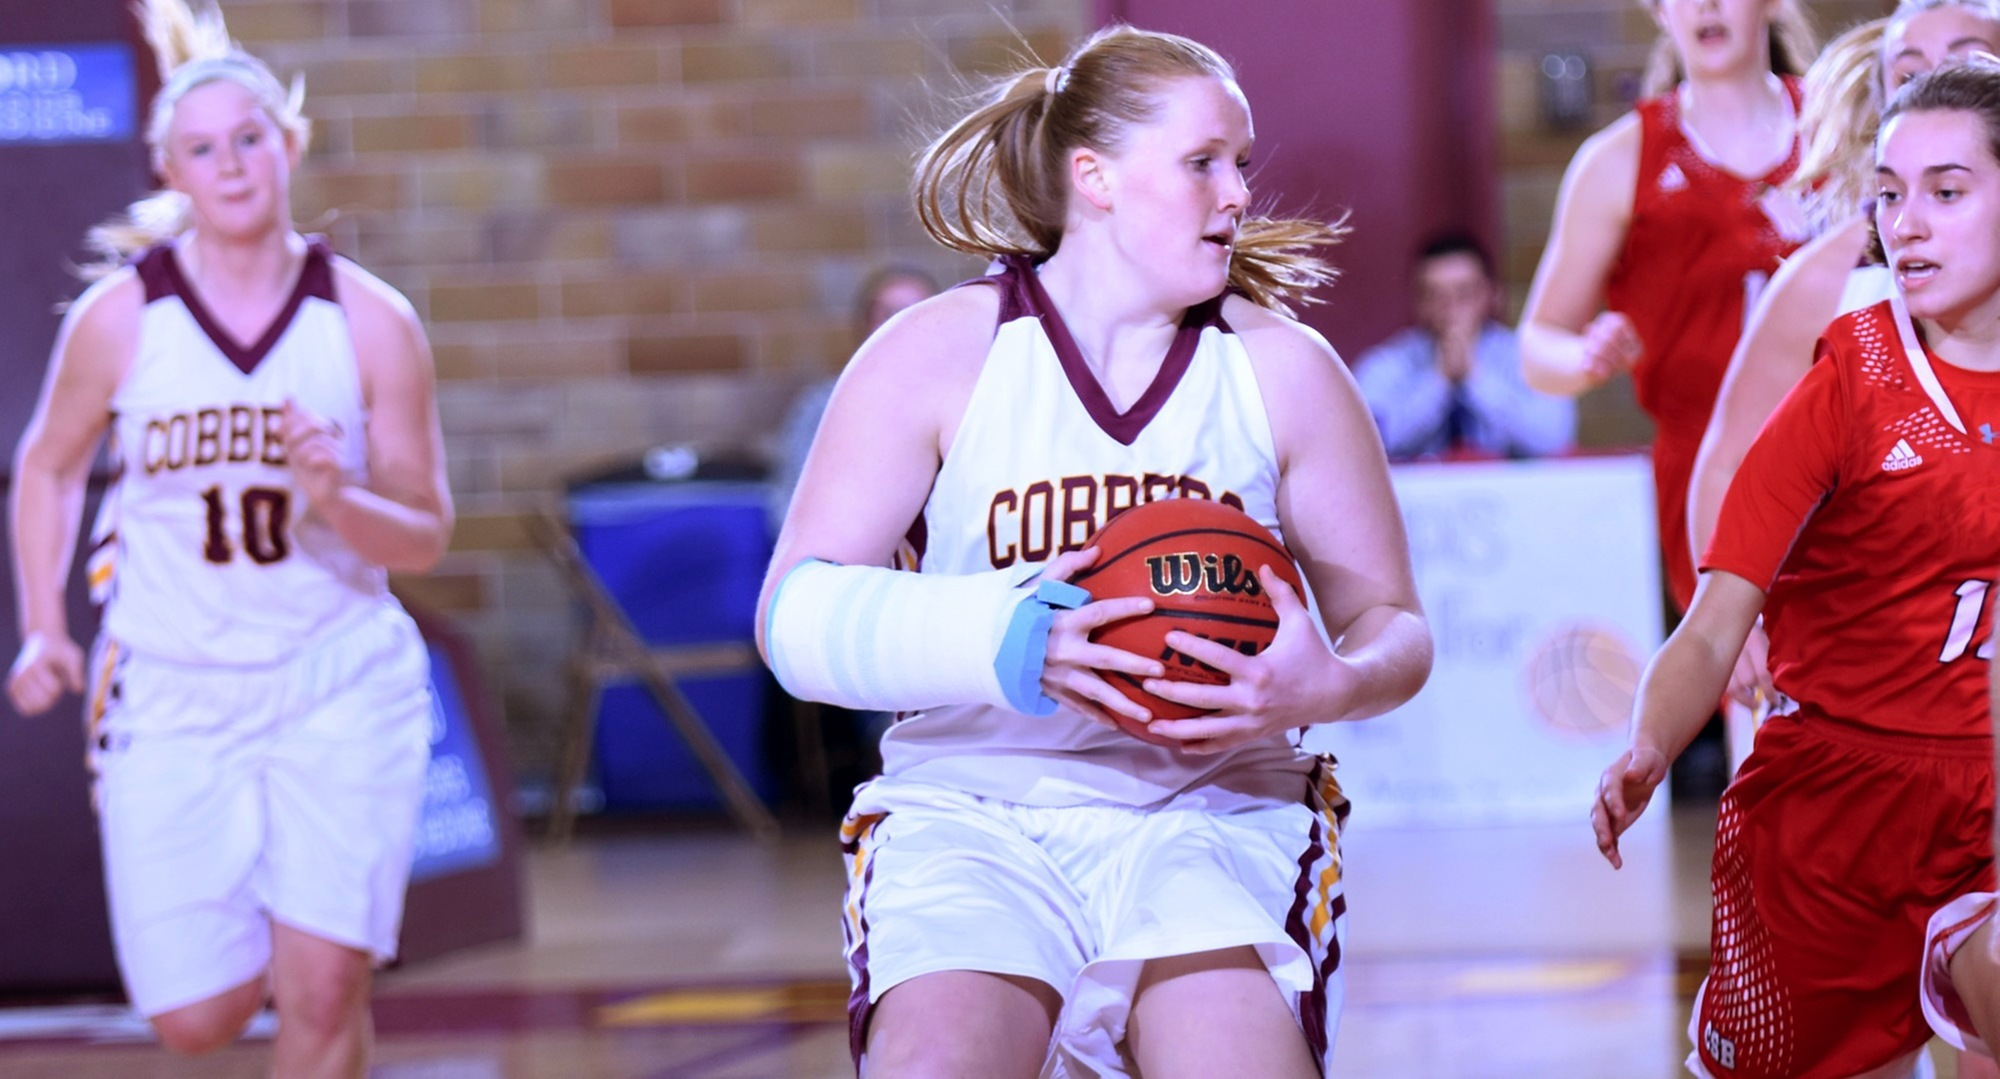 Senior Kirstin Simmons played 32 minutes and grabbed a career-high 16 rebounds in the Cobbers' overtime win at Carleton.